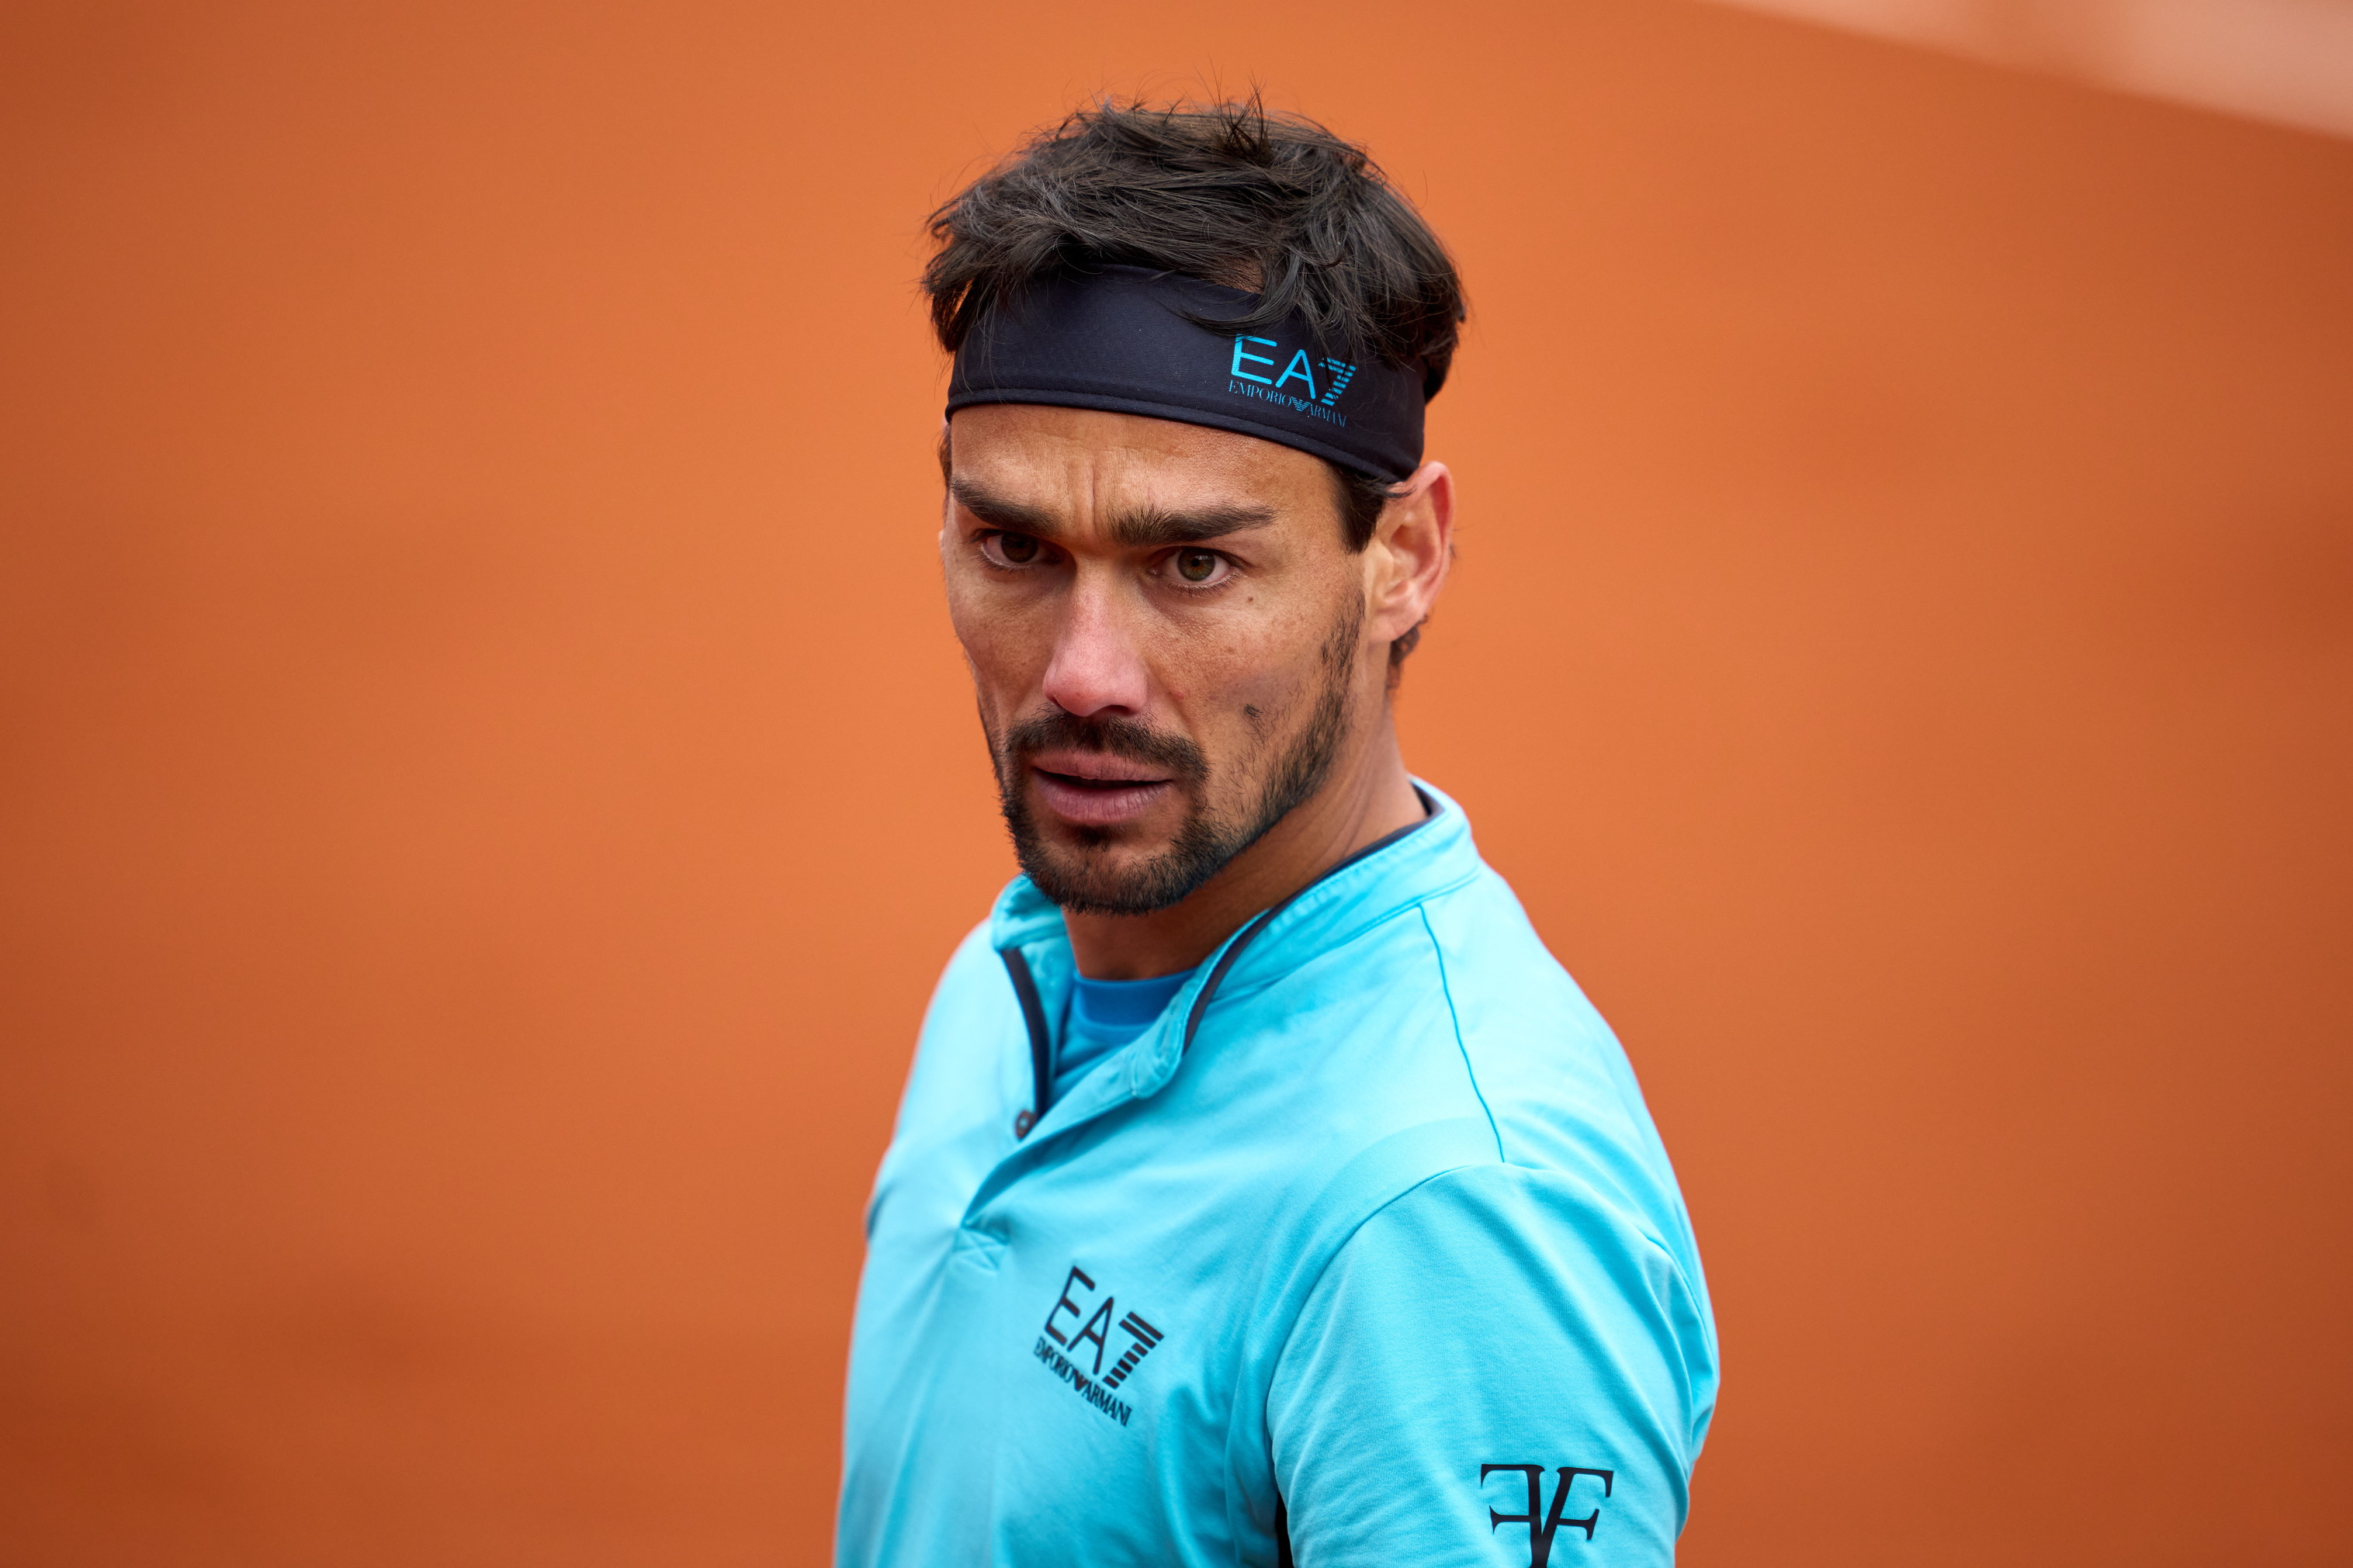 Fabio Fognini, 28º nella classifica ATP.